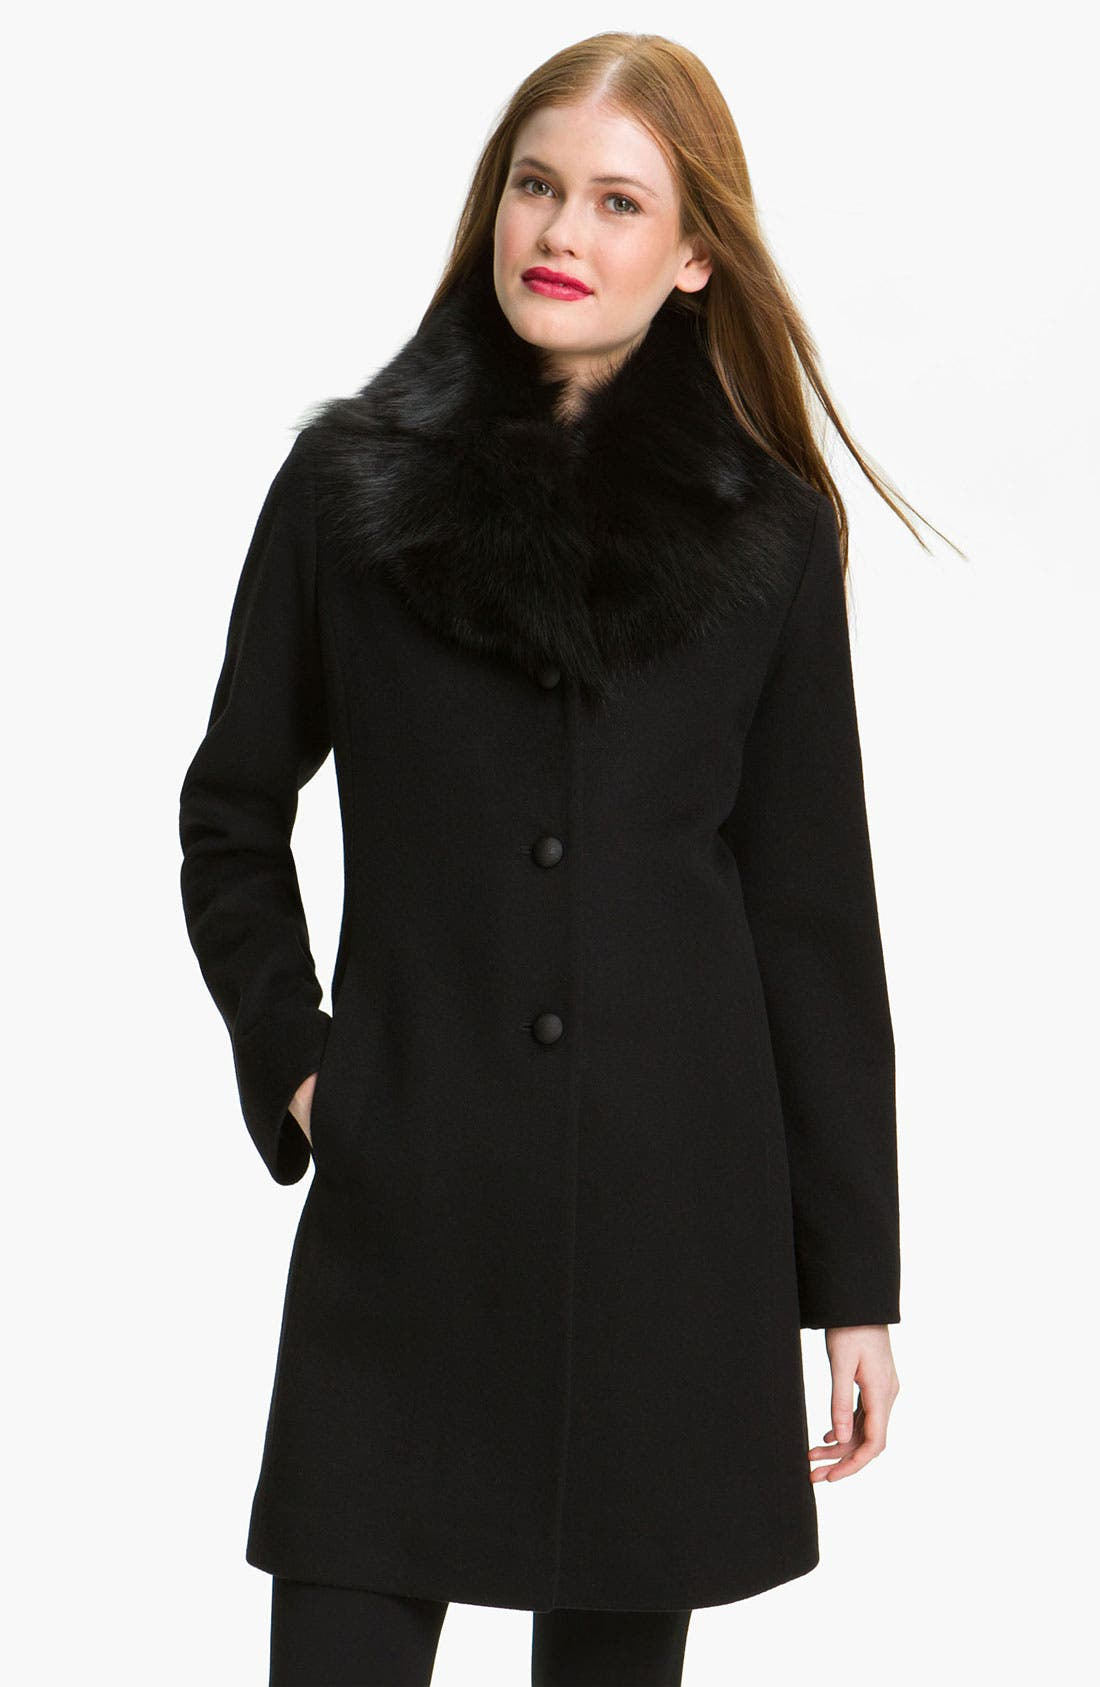 Alternate Image 1 Selected - Fleurette Loro Piana Wool Coat with Genuine Fox Fur (Online Exclusive)